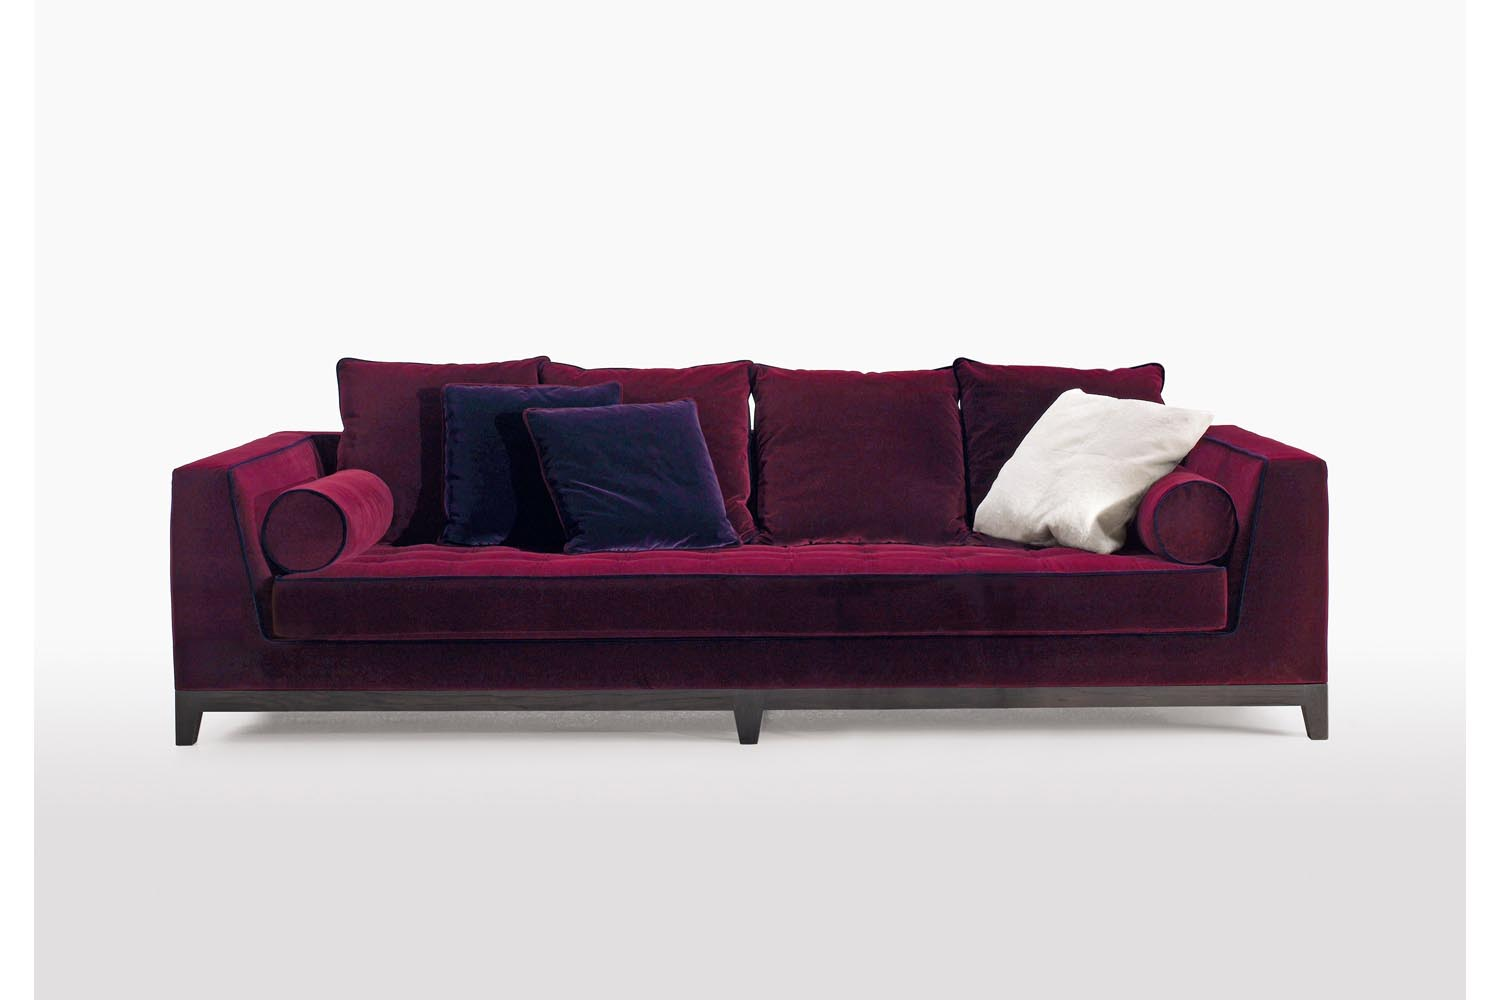 sofa accessories names sectional queen sleeper bed lutetia 2011 by antonio citterio for maxalto space